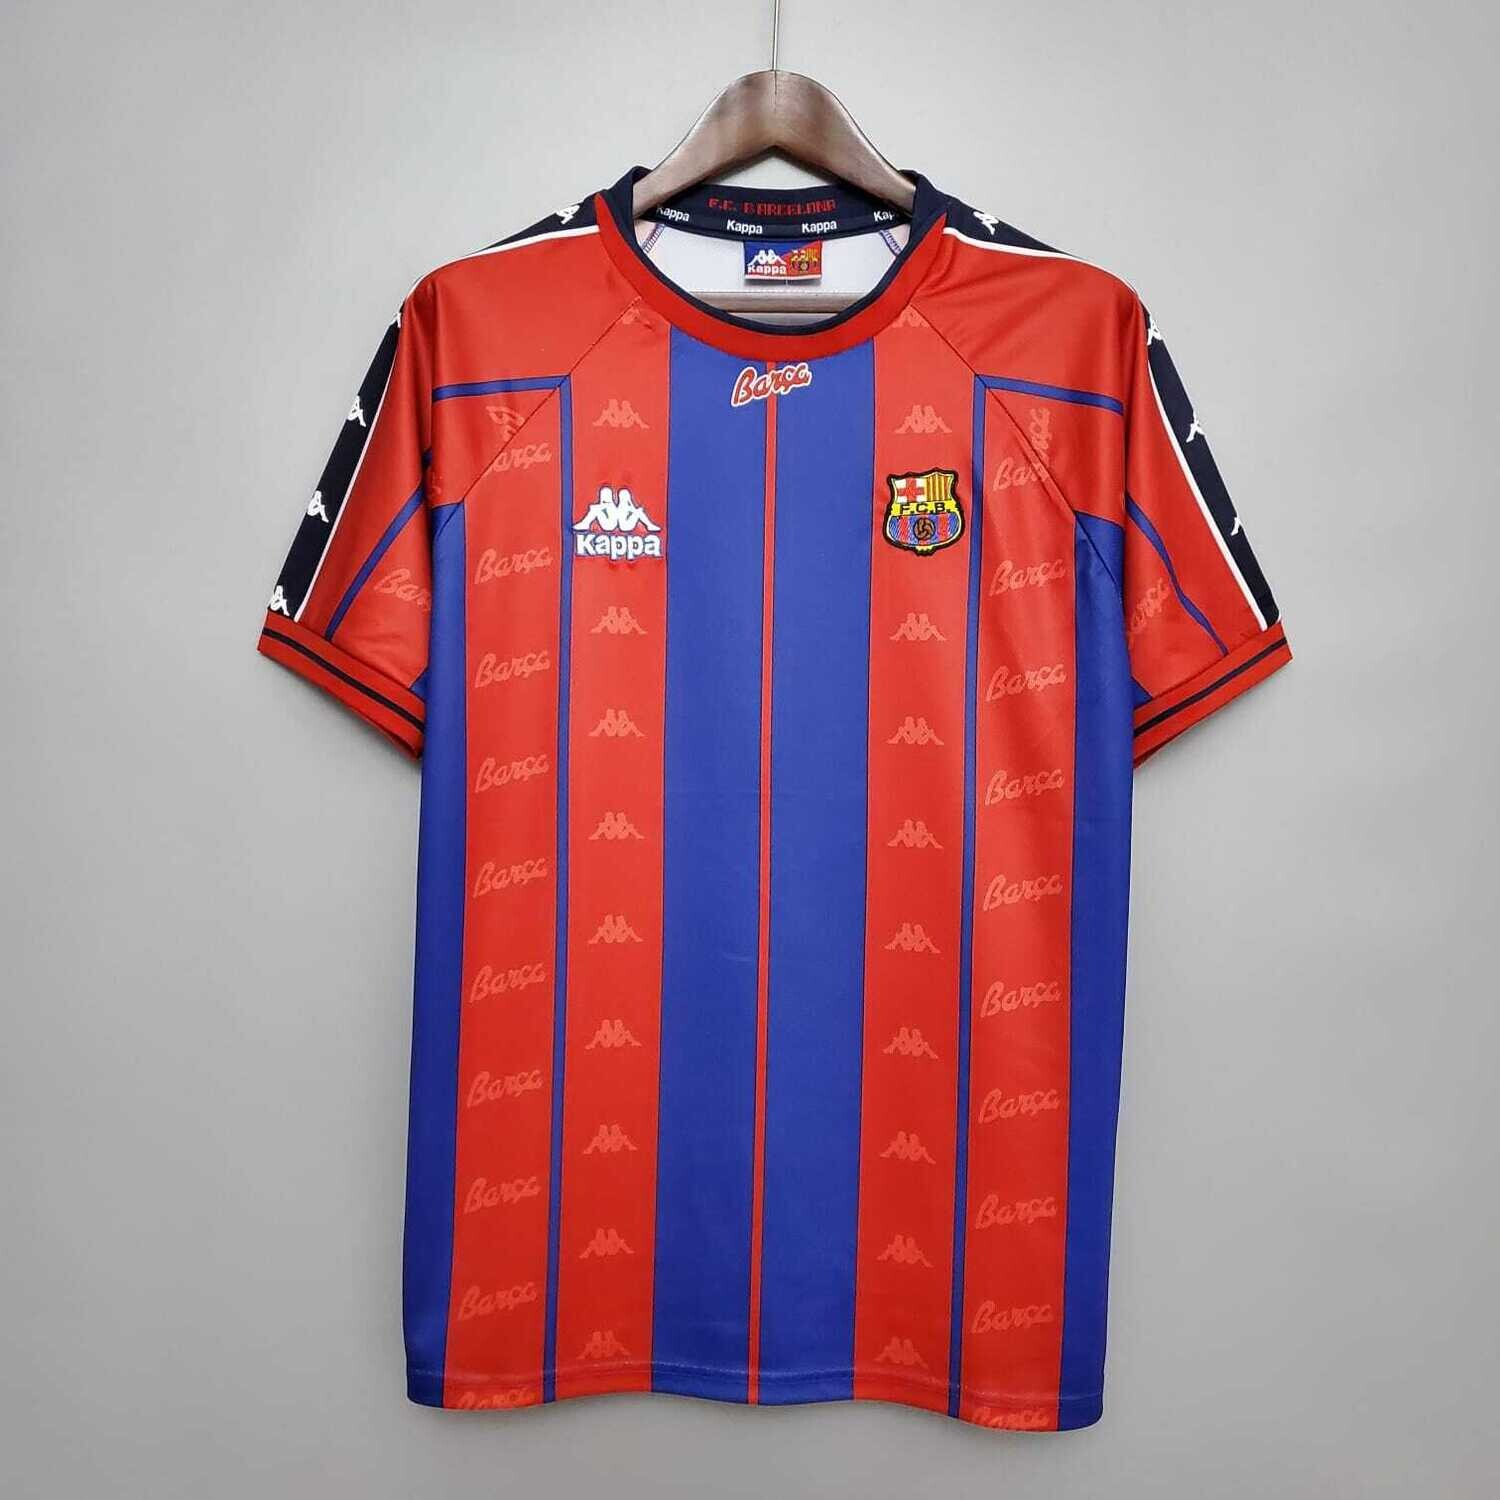 Barcelona 19997-98 Retro Home Jersey [Pre-paid Only]